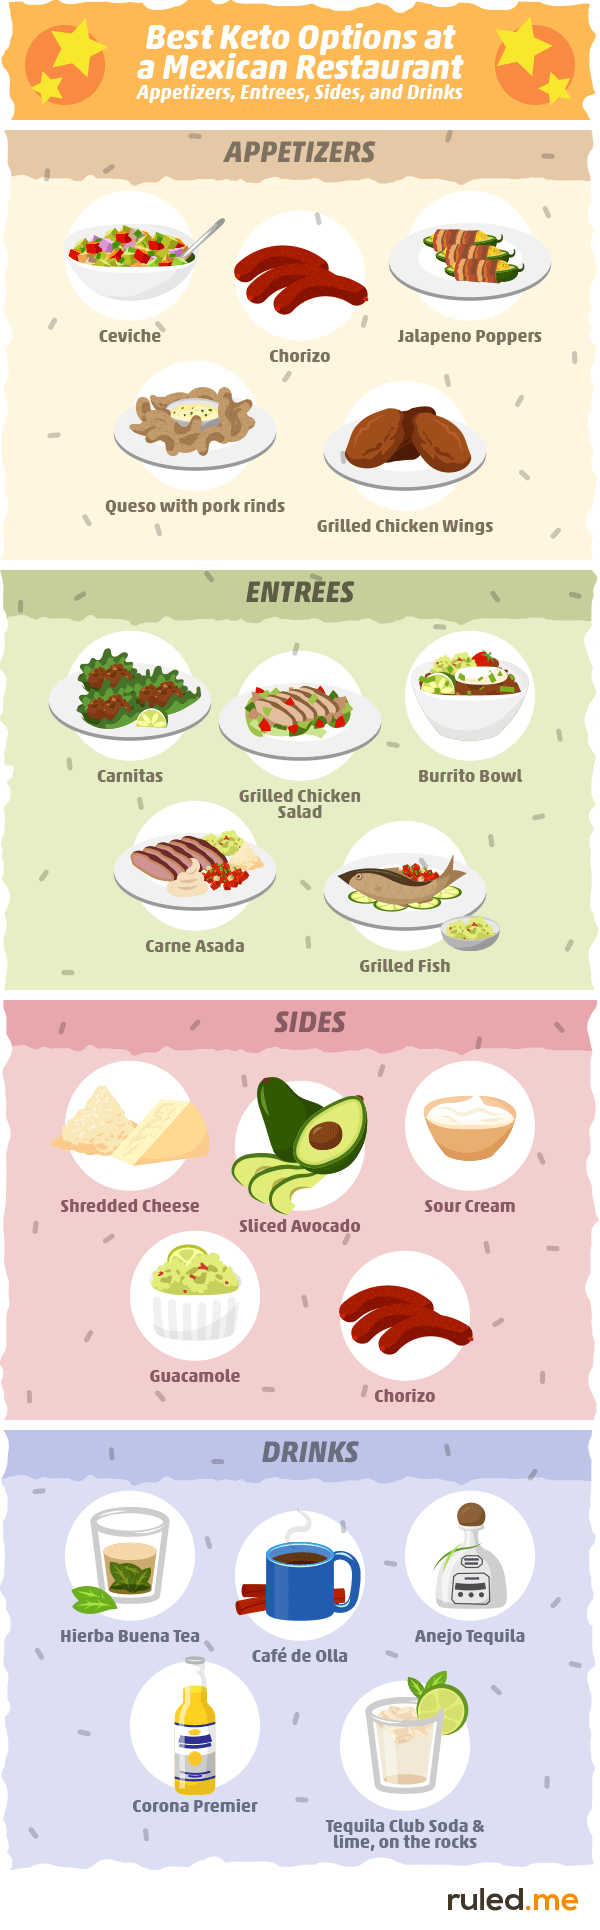 Best Keto Options at a Mexican Restaurant: Appetizers, Entrees, Sides, and Drinks